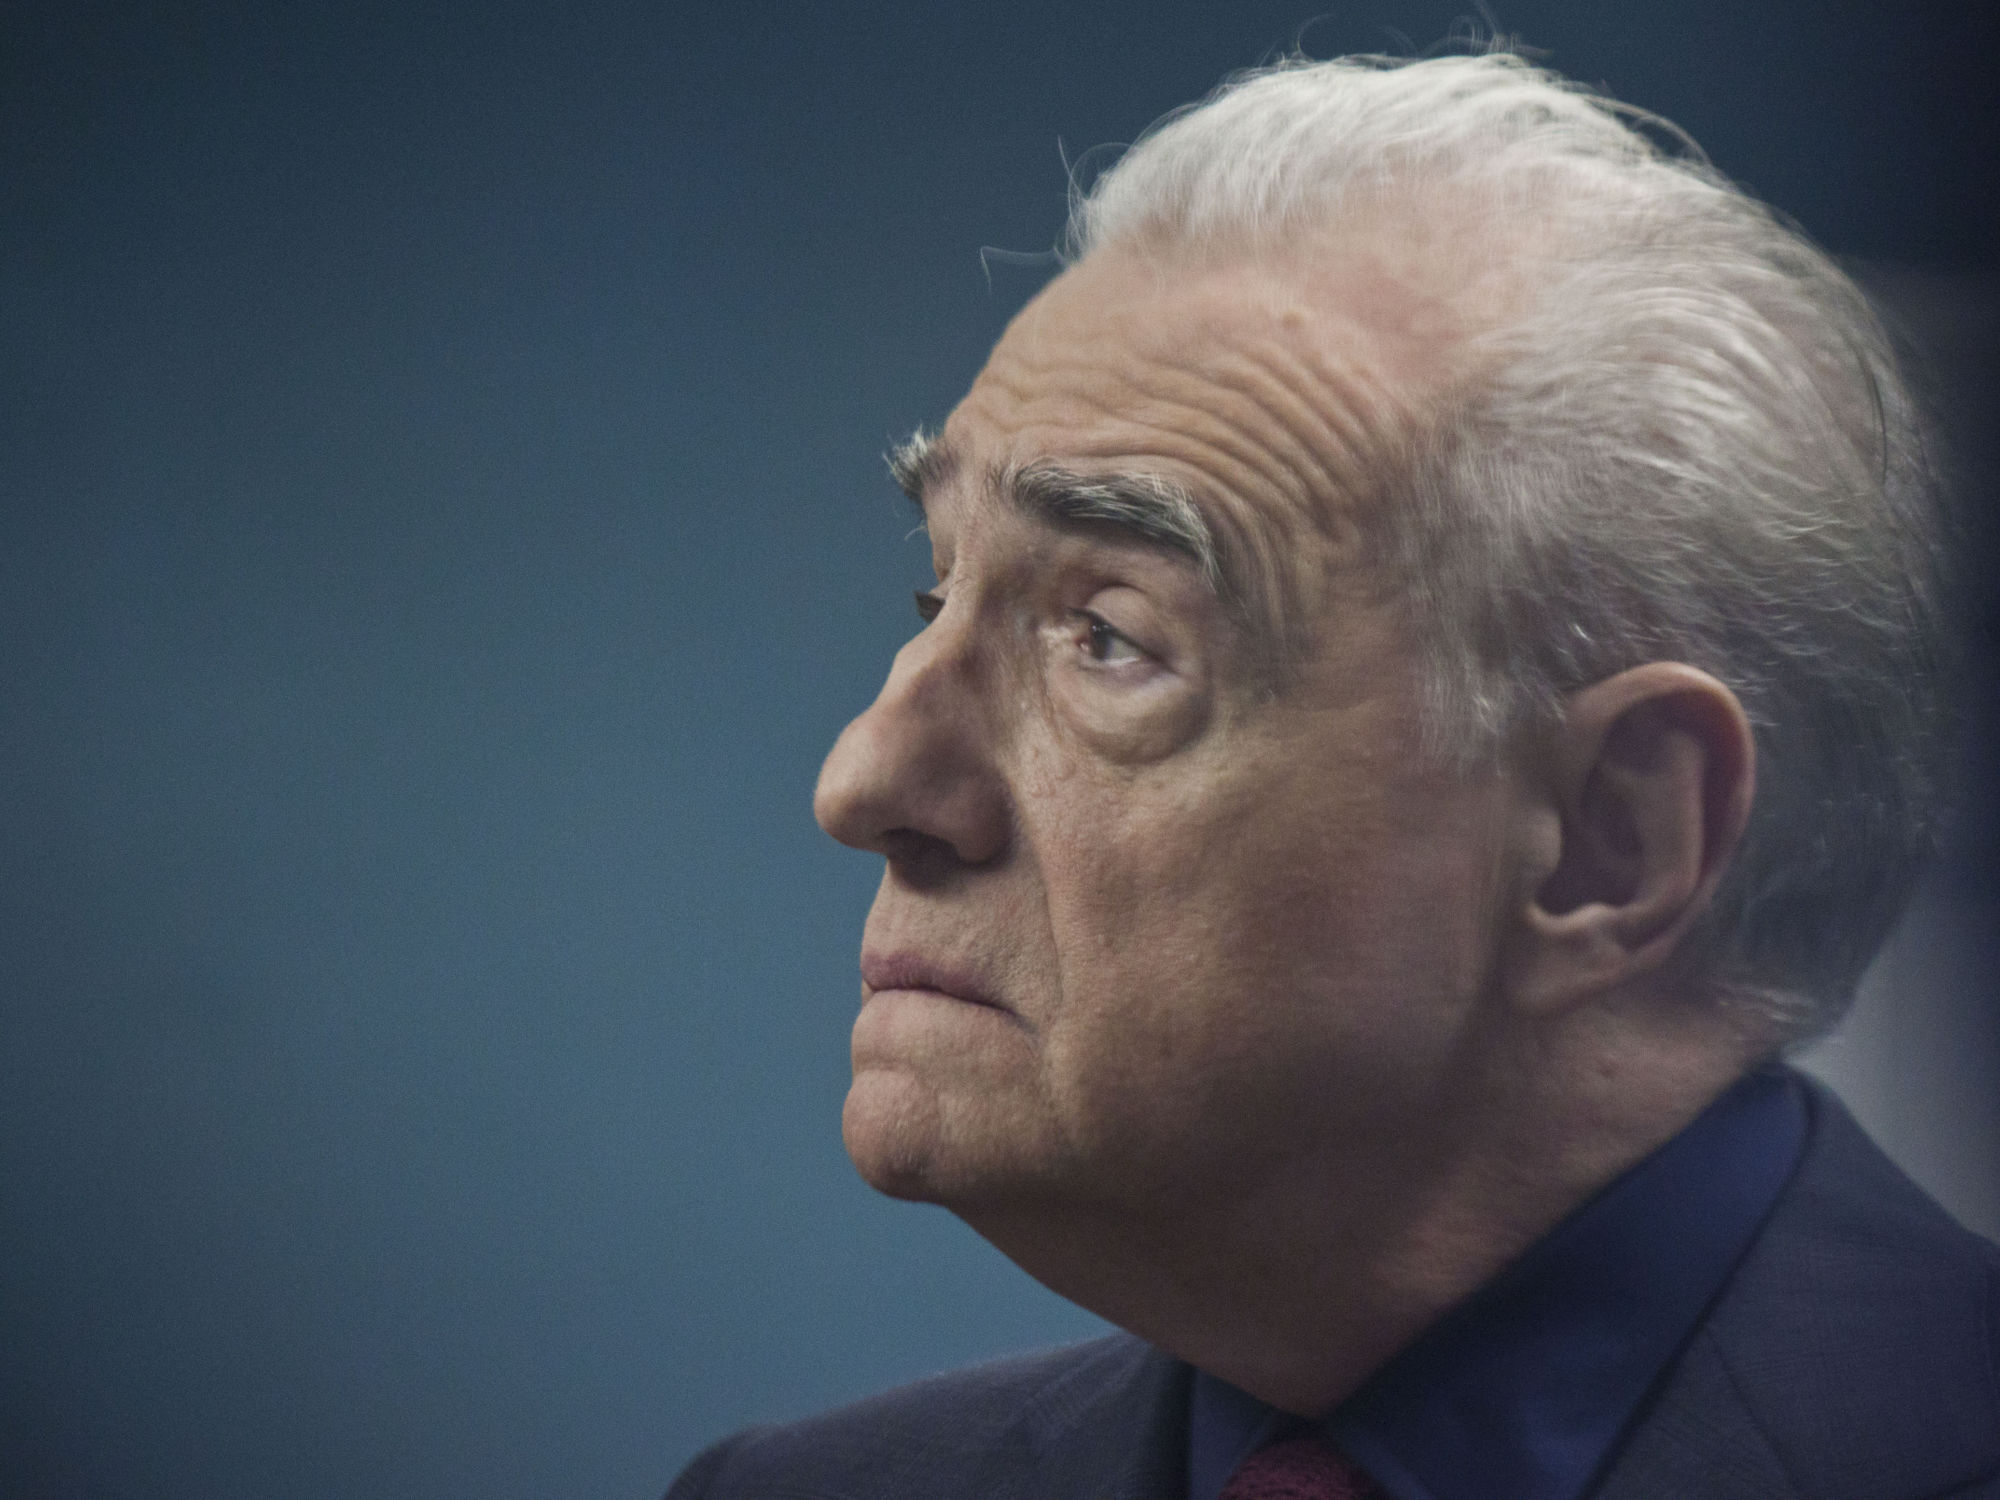 Scorsese Explains His Take on Marvel Movies in NYT Editorial